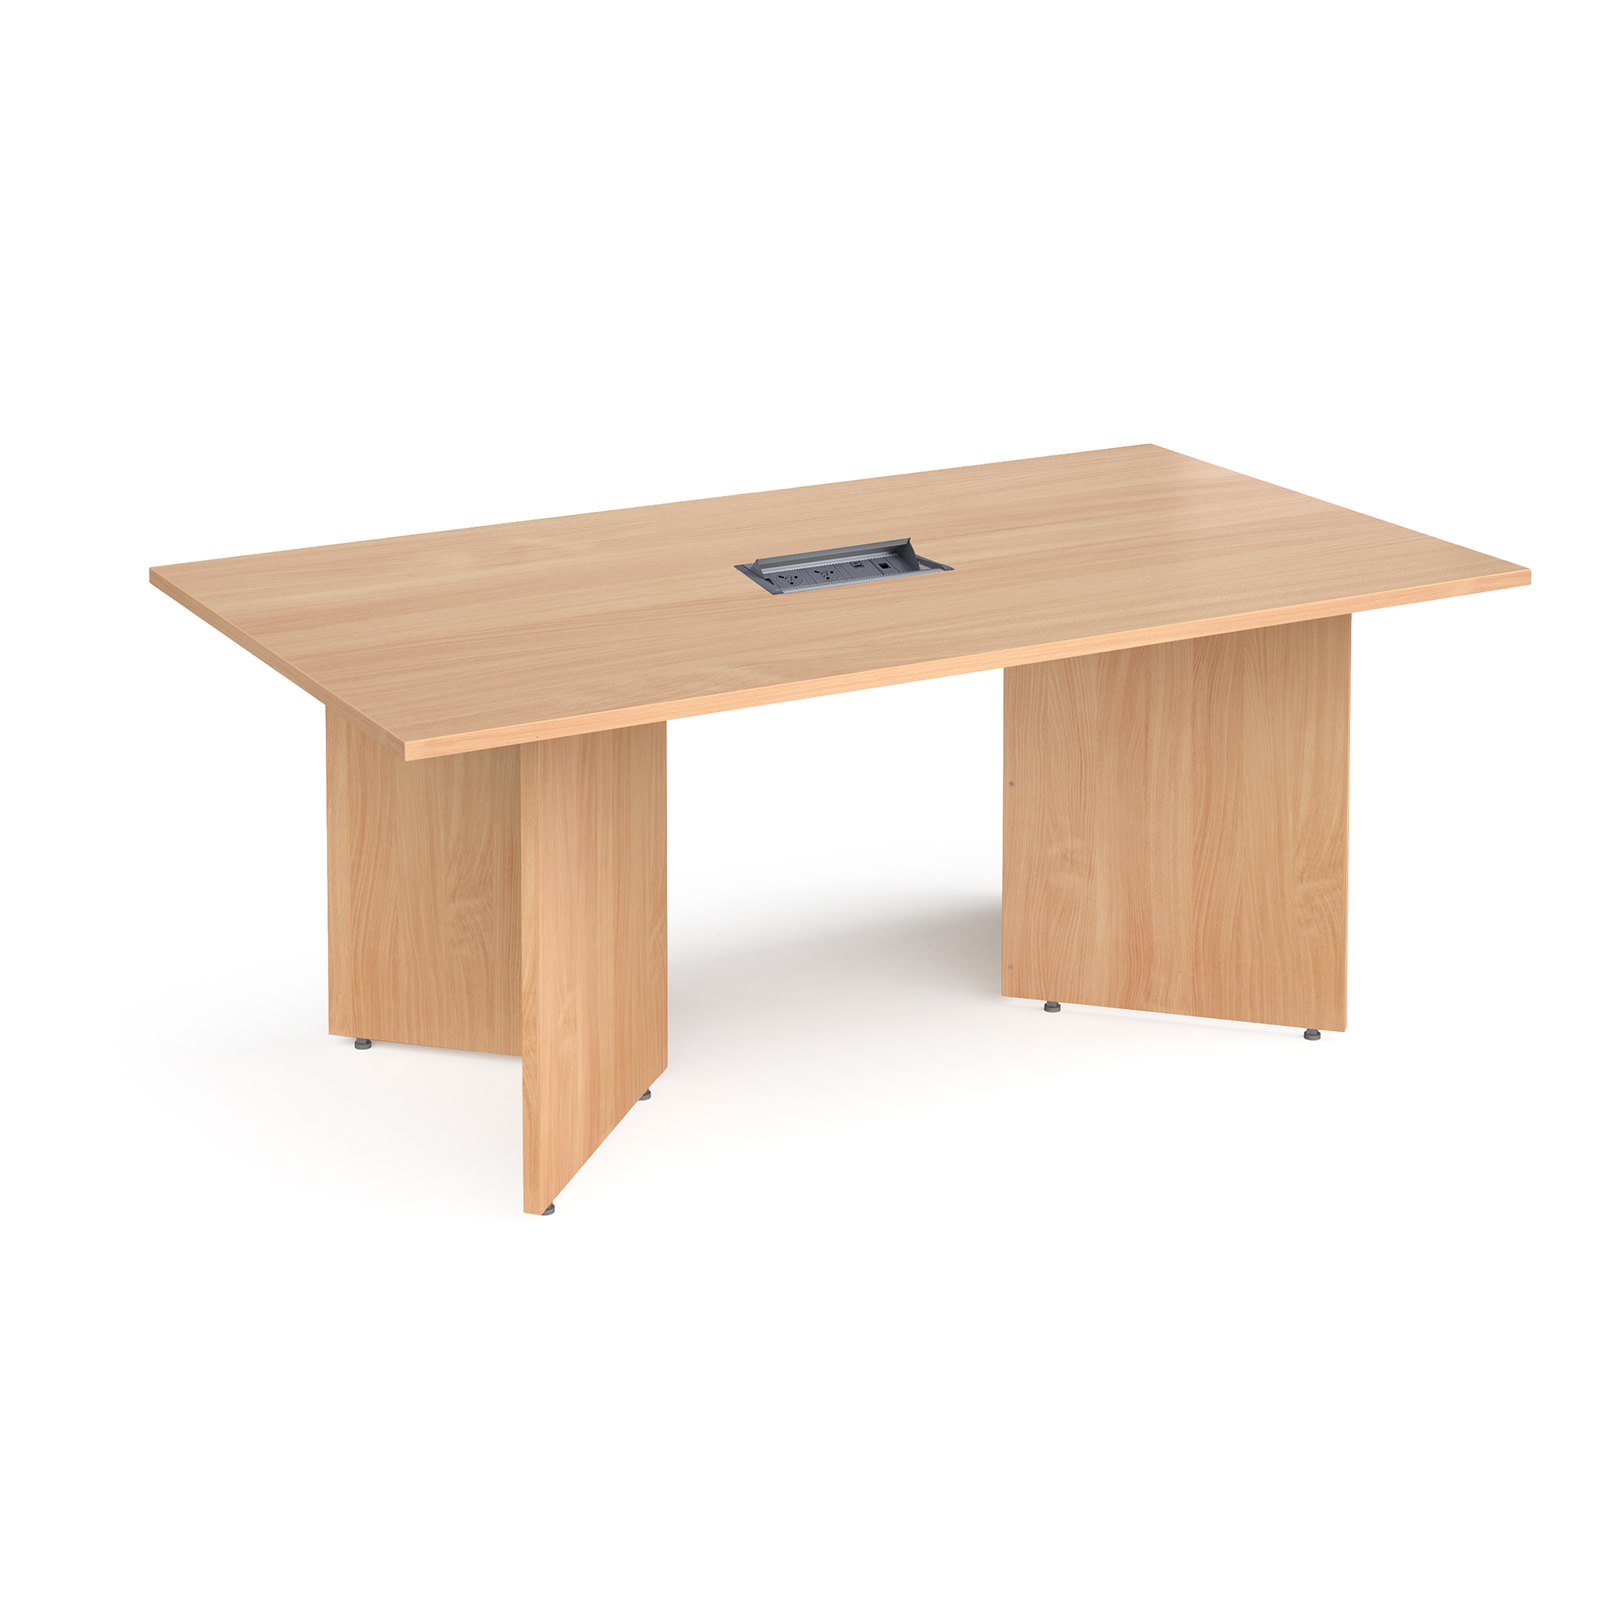 Boardroom / Meeting Arrow head leg rectangular boardroom table 1800mm x 1000mm in beech with central cutout and Aero power module